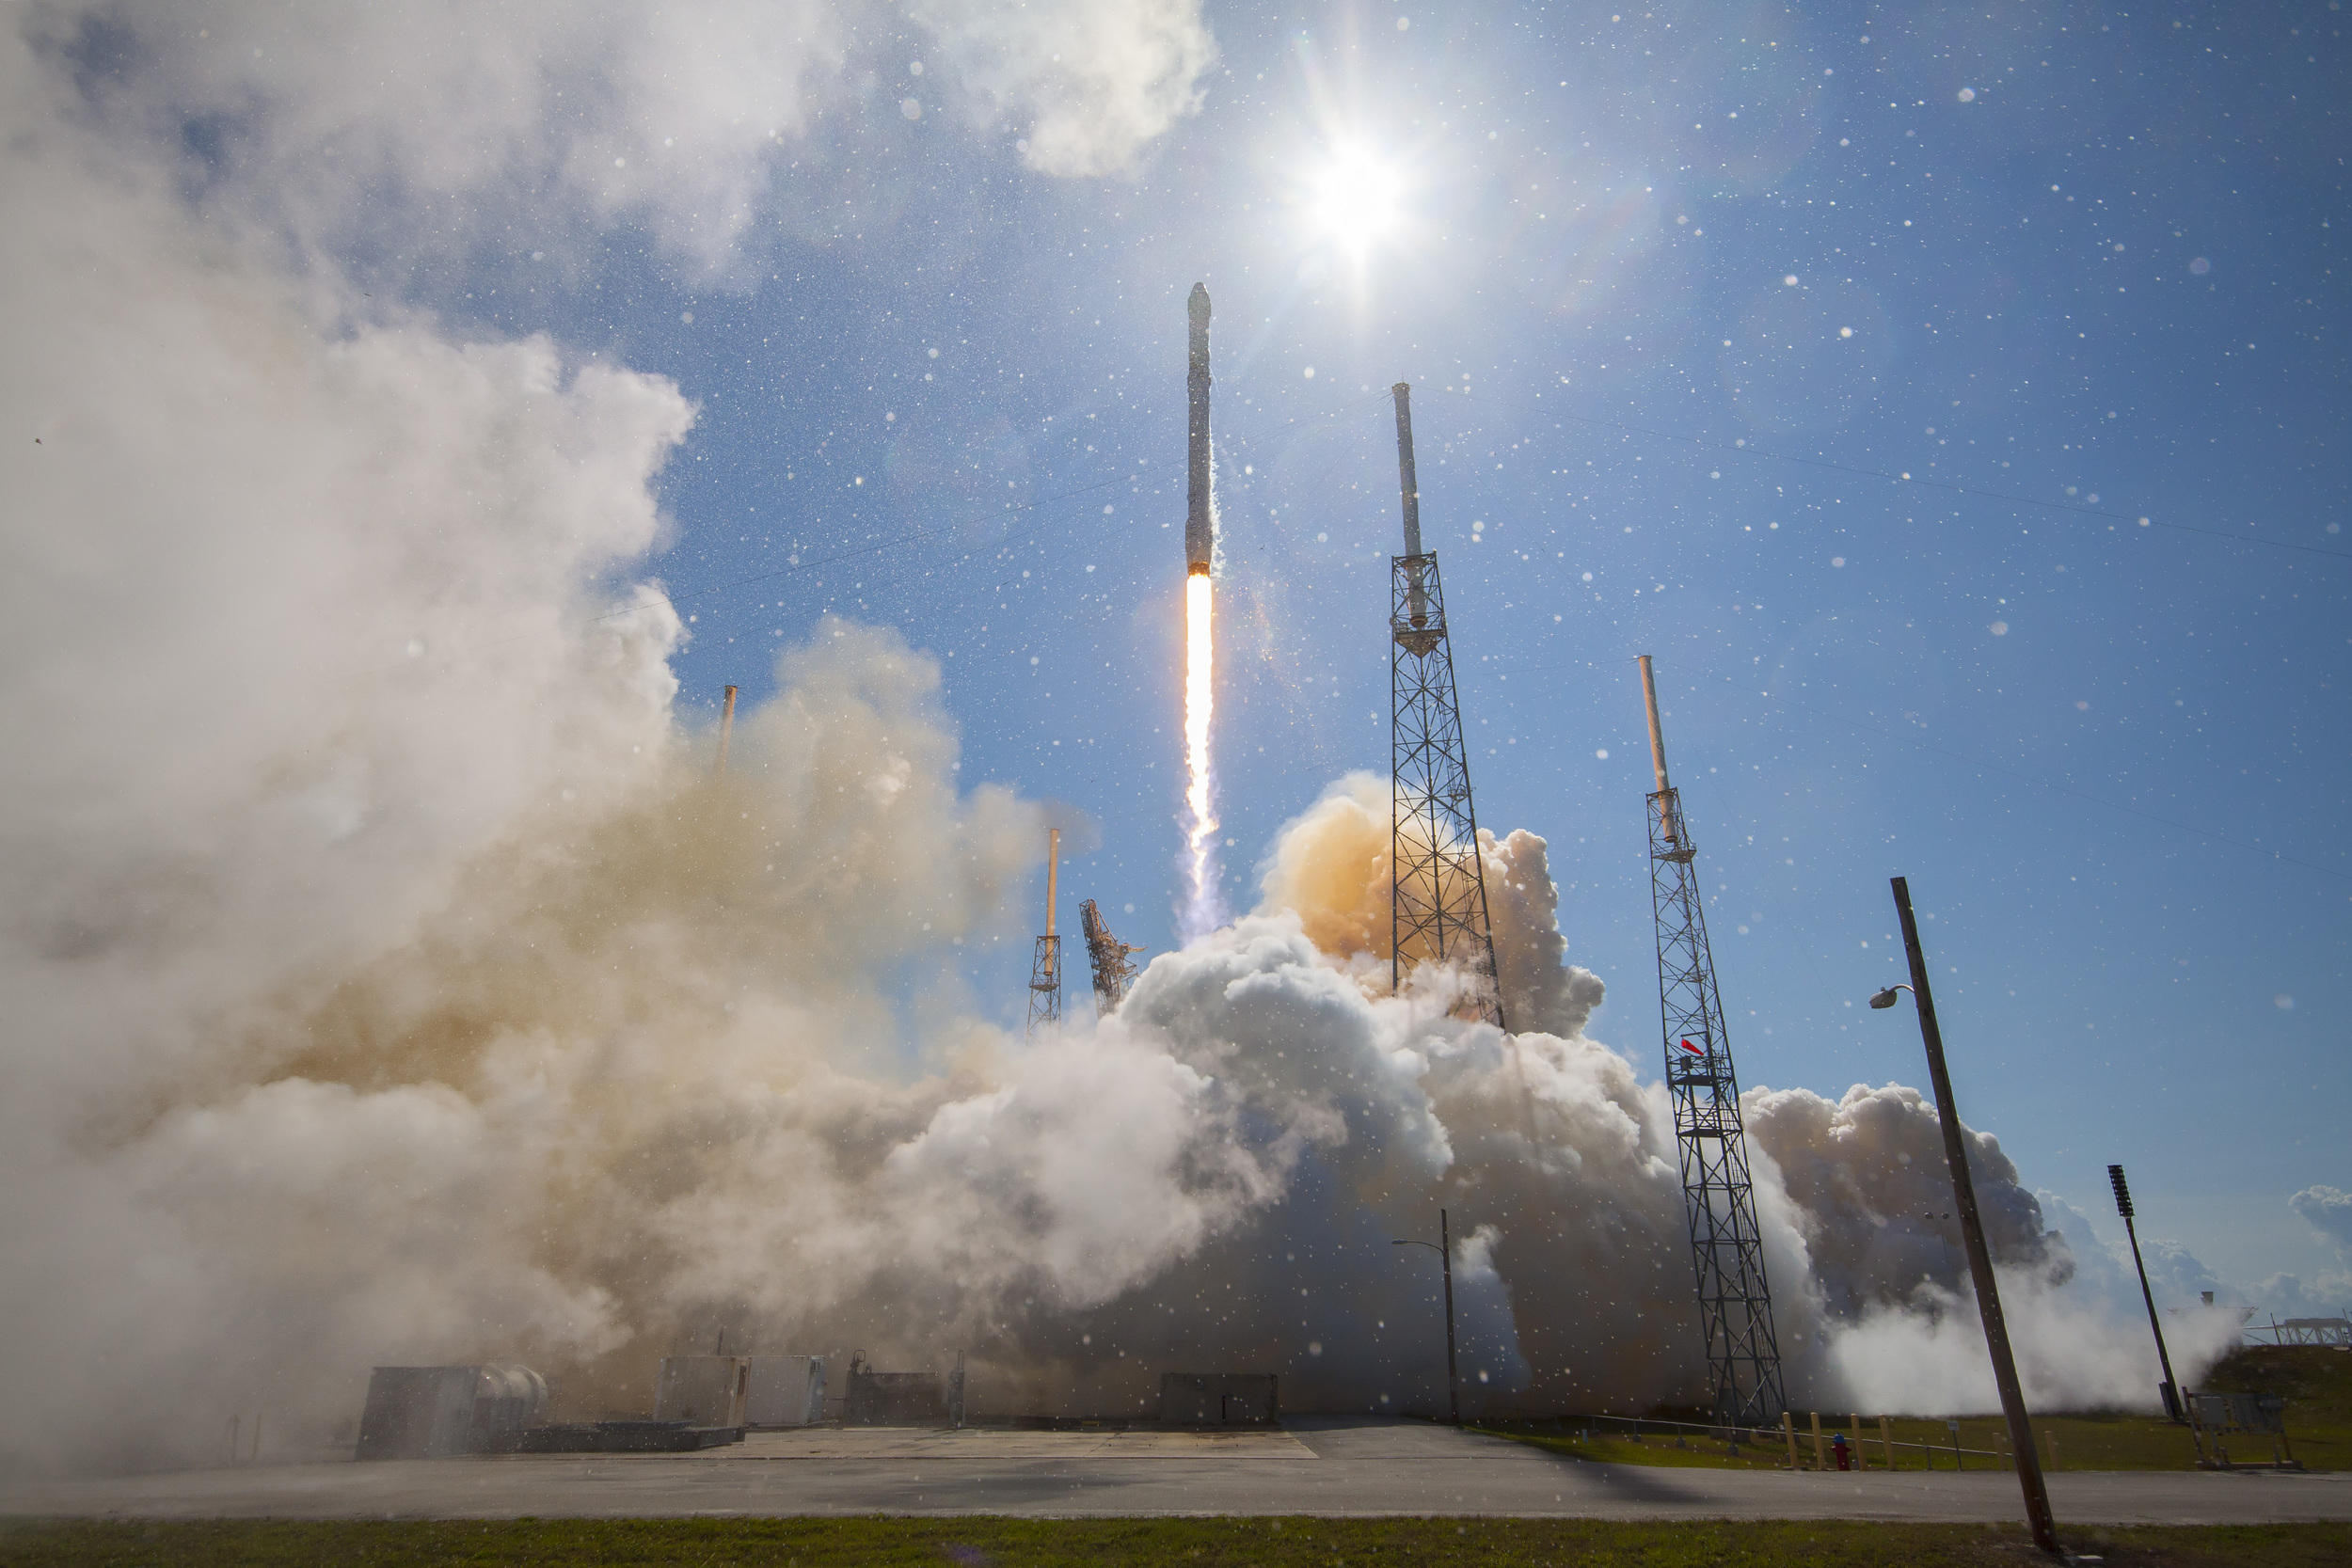 On Tuesday, April 14, 2015, SpaceX's Falcon 9 rocket and Dragon spacecraft lifted off from Launch Complex 40 at Cape Canaveral Air Force Station in Florida. The SpaceX CRS-7 was not so lucky, exploding during liftoff on June 28. (SpaceX photo).